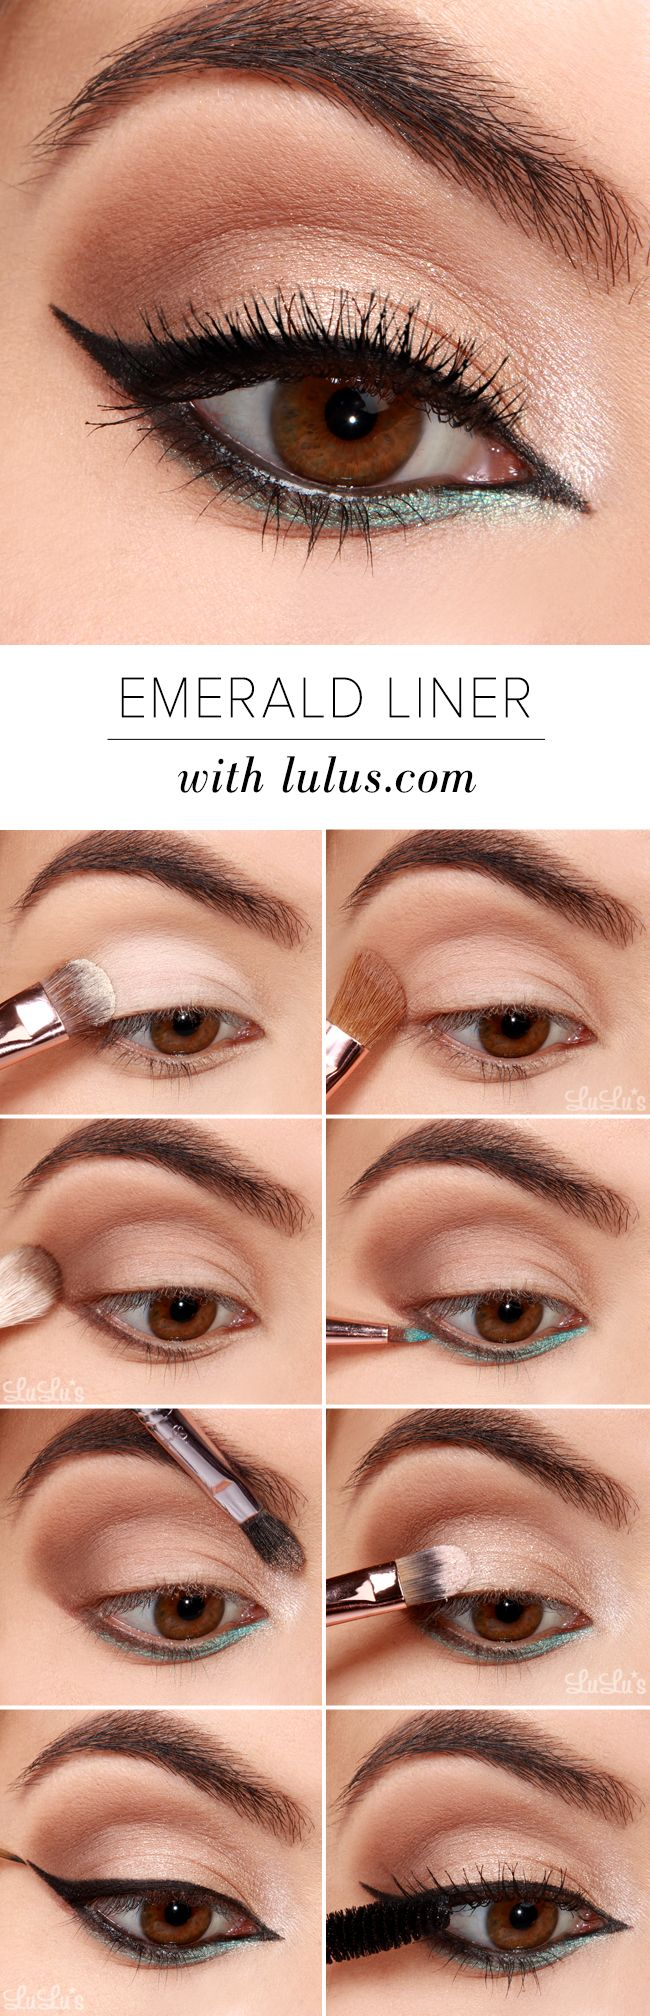 LuLu*s How-To: Emerald Green Eyeliner Tutorial